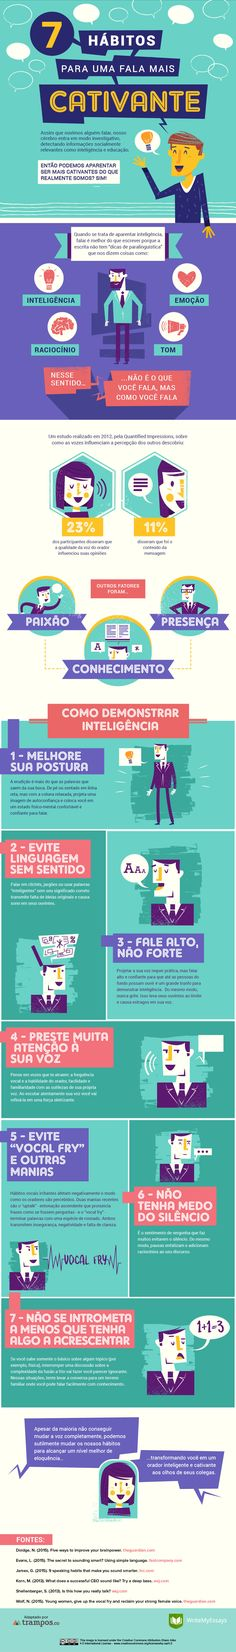 7 Speaking Habits That Will Make You Sound Smarter Infographic - e-Learning Infographics Guter Rat, Public Speaking Tips, Presentation Skills, Presentation Techniques, You Sound, How To Sound Smart, Communication Skills, Effective Communication, Self Development